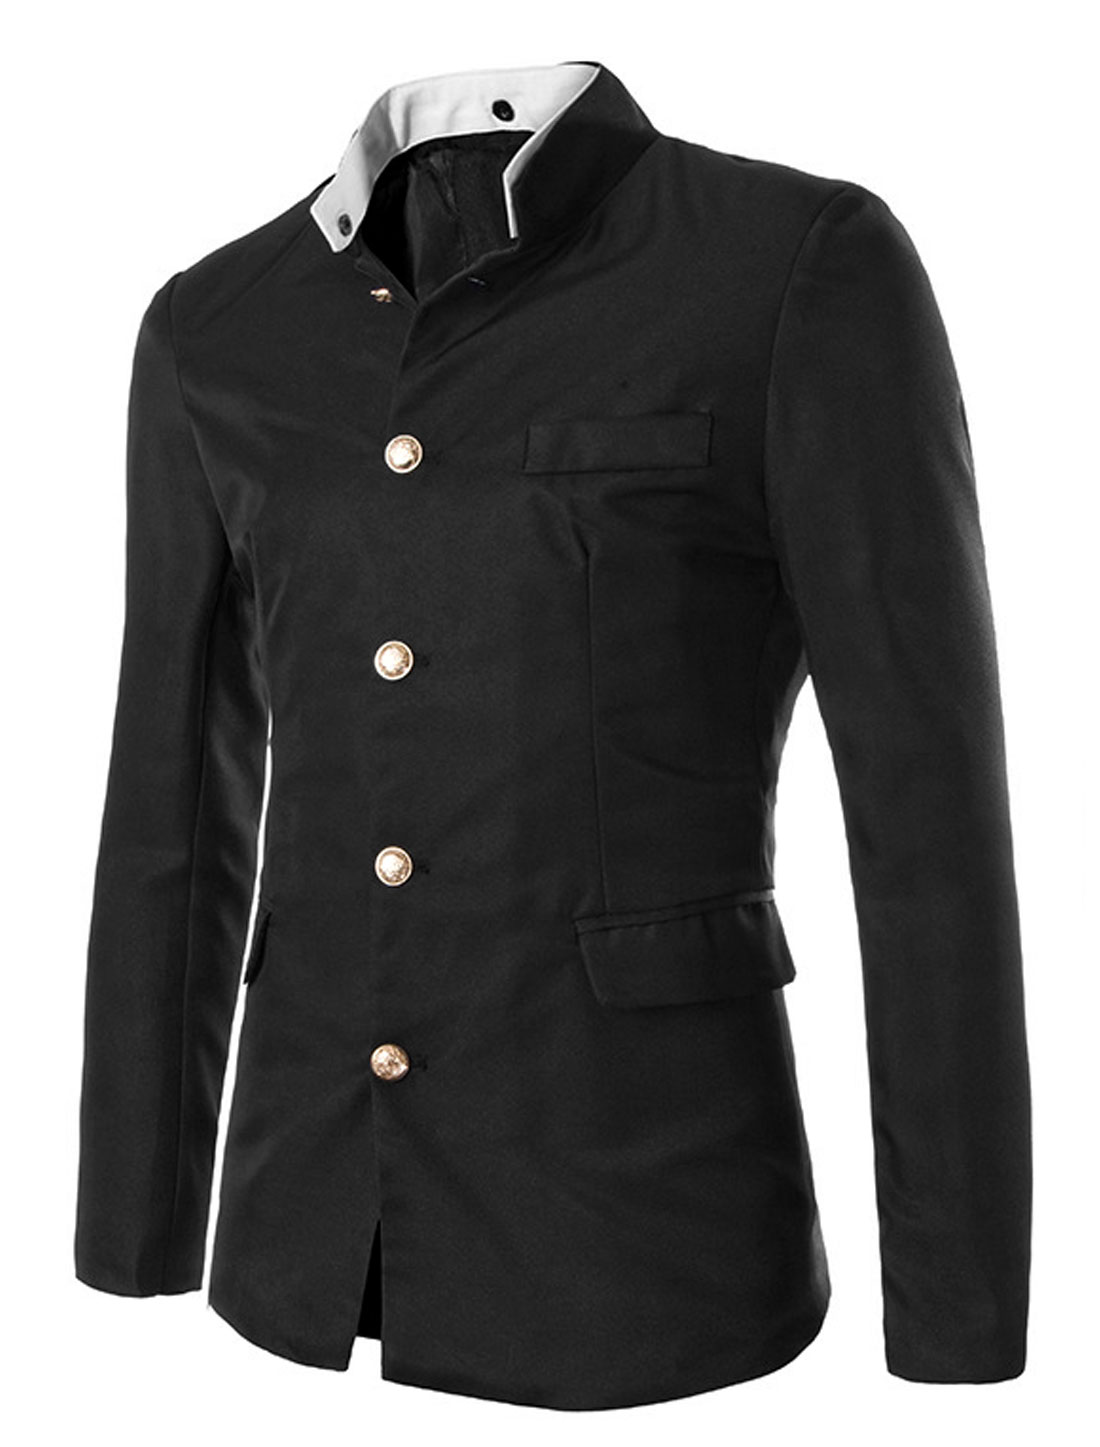 Men Black Button Closure Front Pockets Long Sleeves Blazer Jacket M